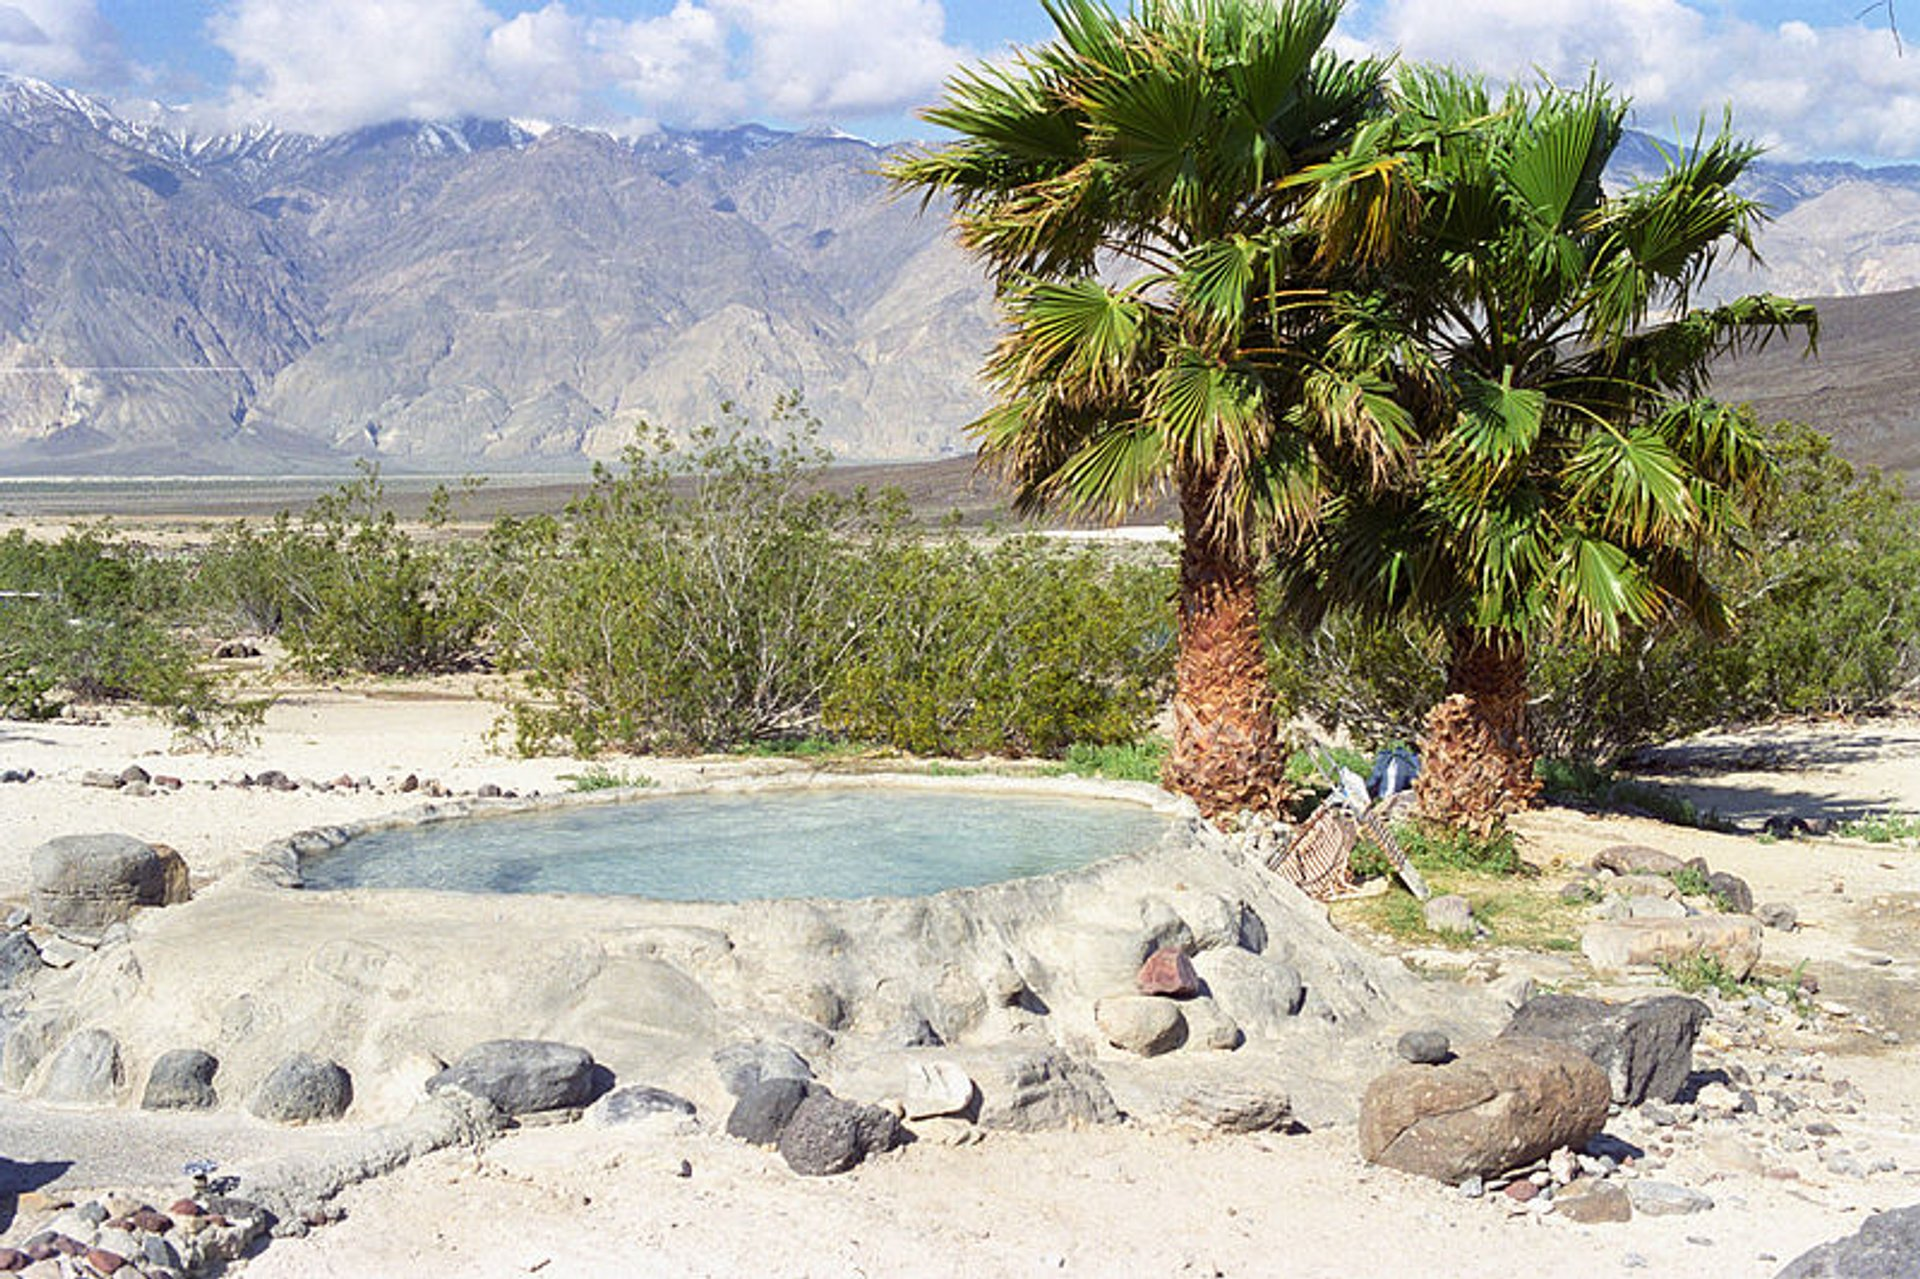 Saline Valley Hot Springs in Death Valley 2020 - Best Time